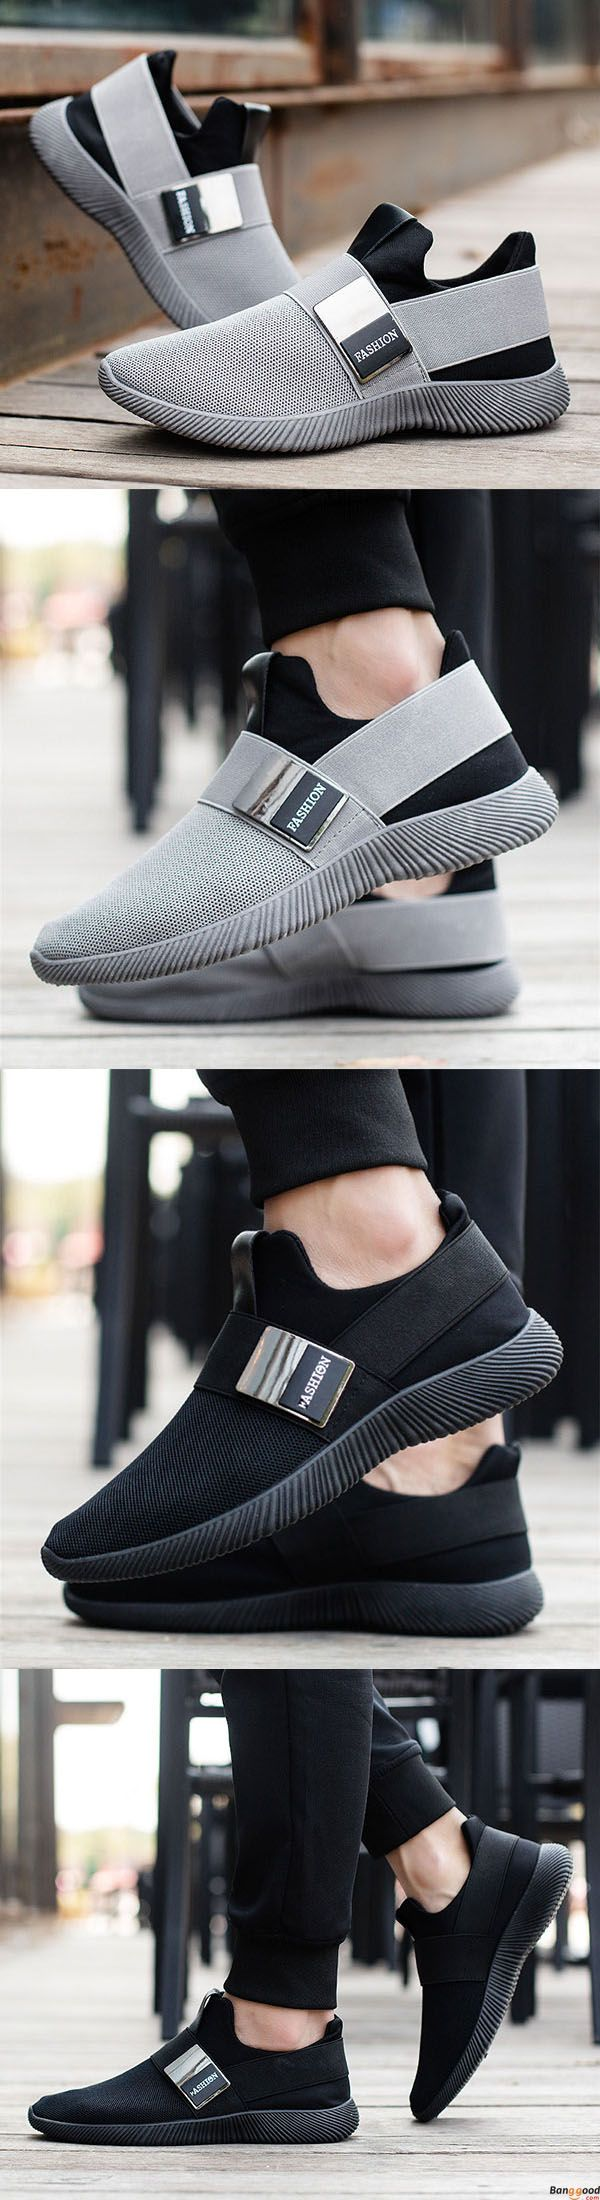 US$30.87+ Free Shipping   Men comfortable slip on sneakers. 2 colors available. size: us6.5~us10. fashion and chic.  Men's shoes,men's athletic shoes,sneakers, men's sneakers,workout,fitness,nike,adidas men's style, chic style, fashion style. Shop at bang